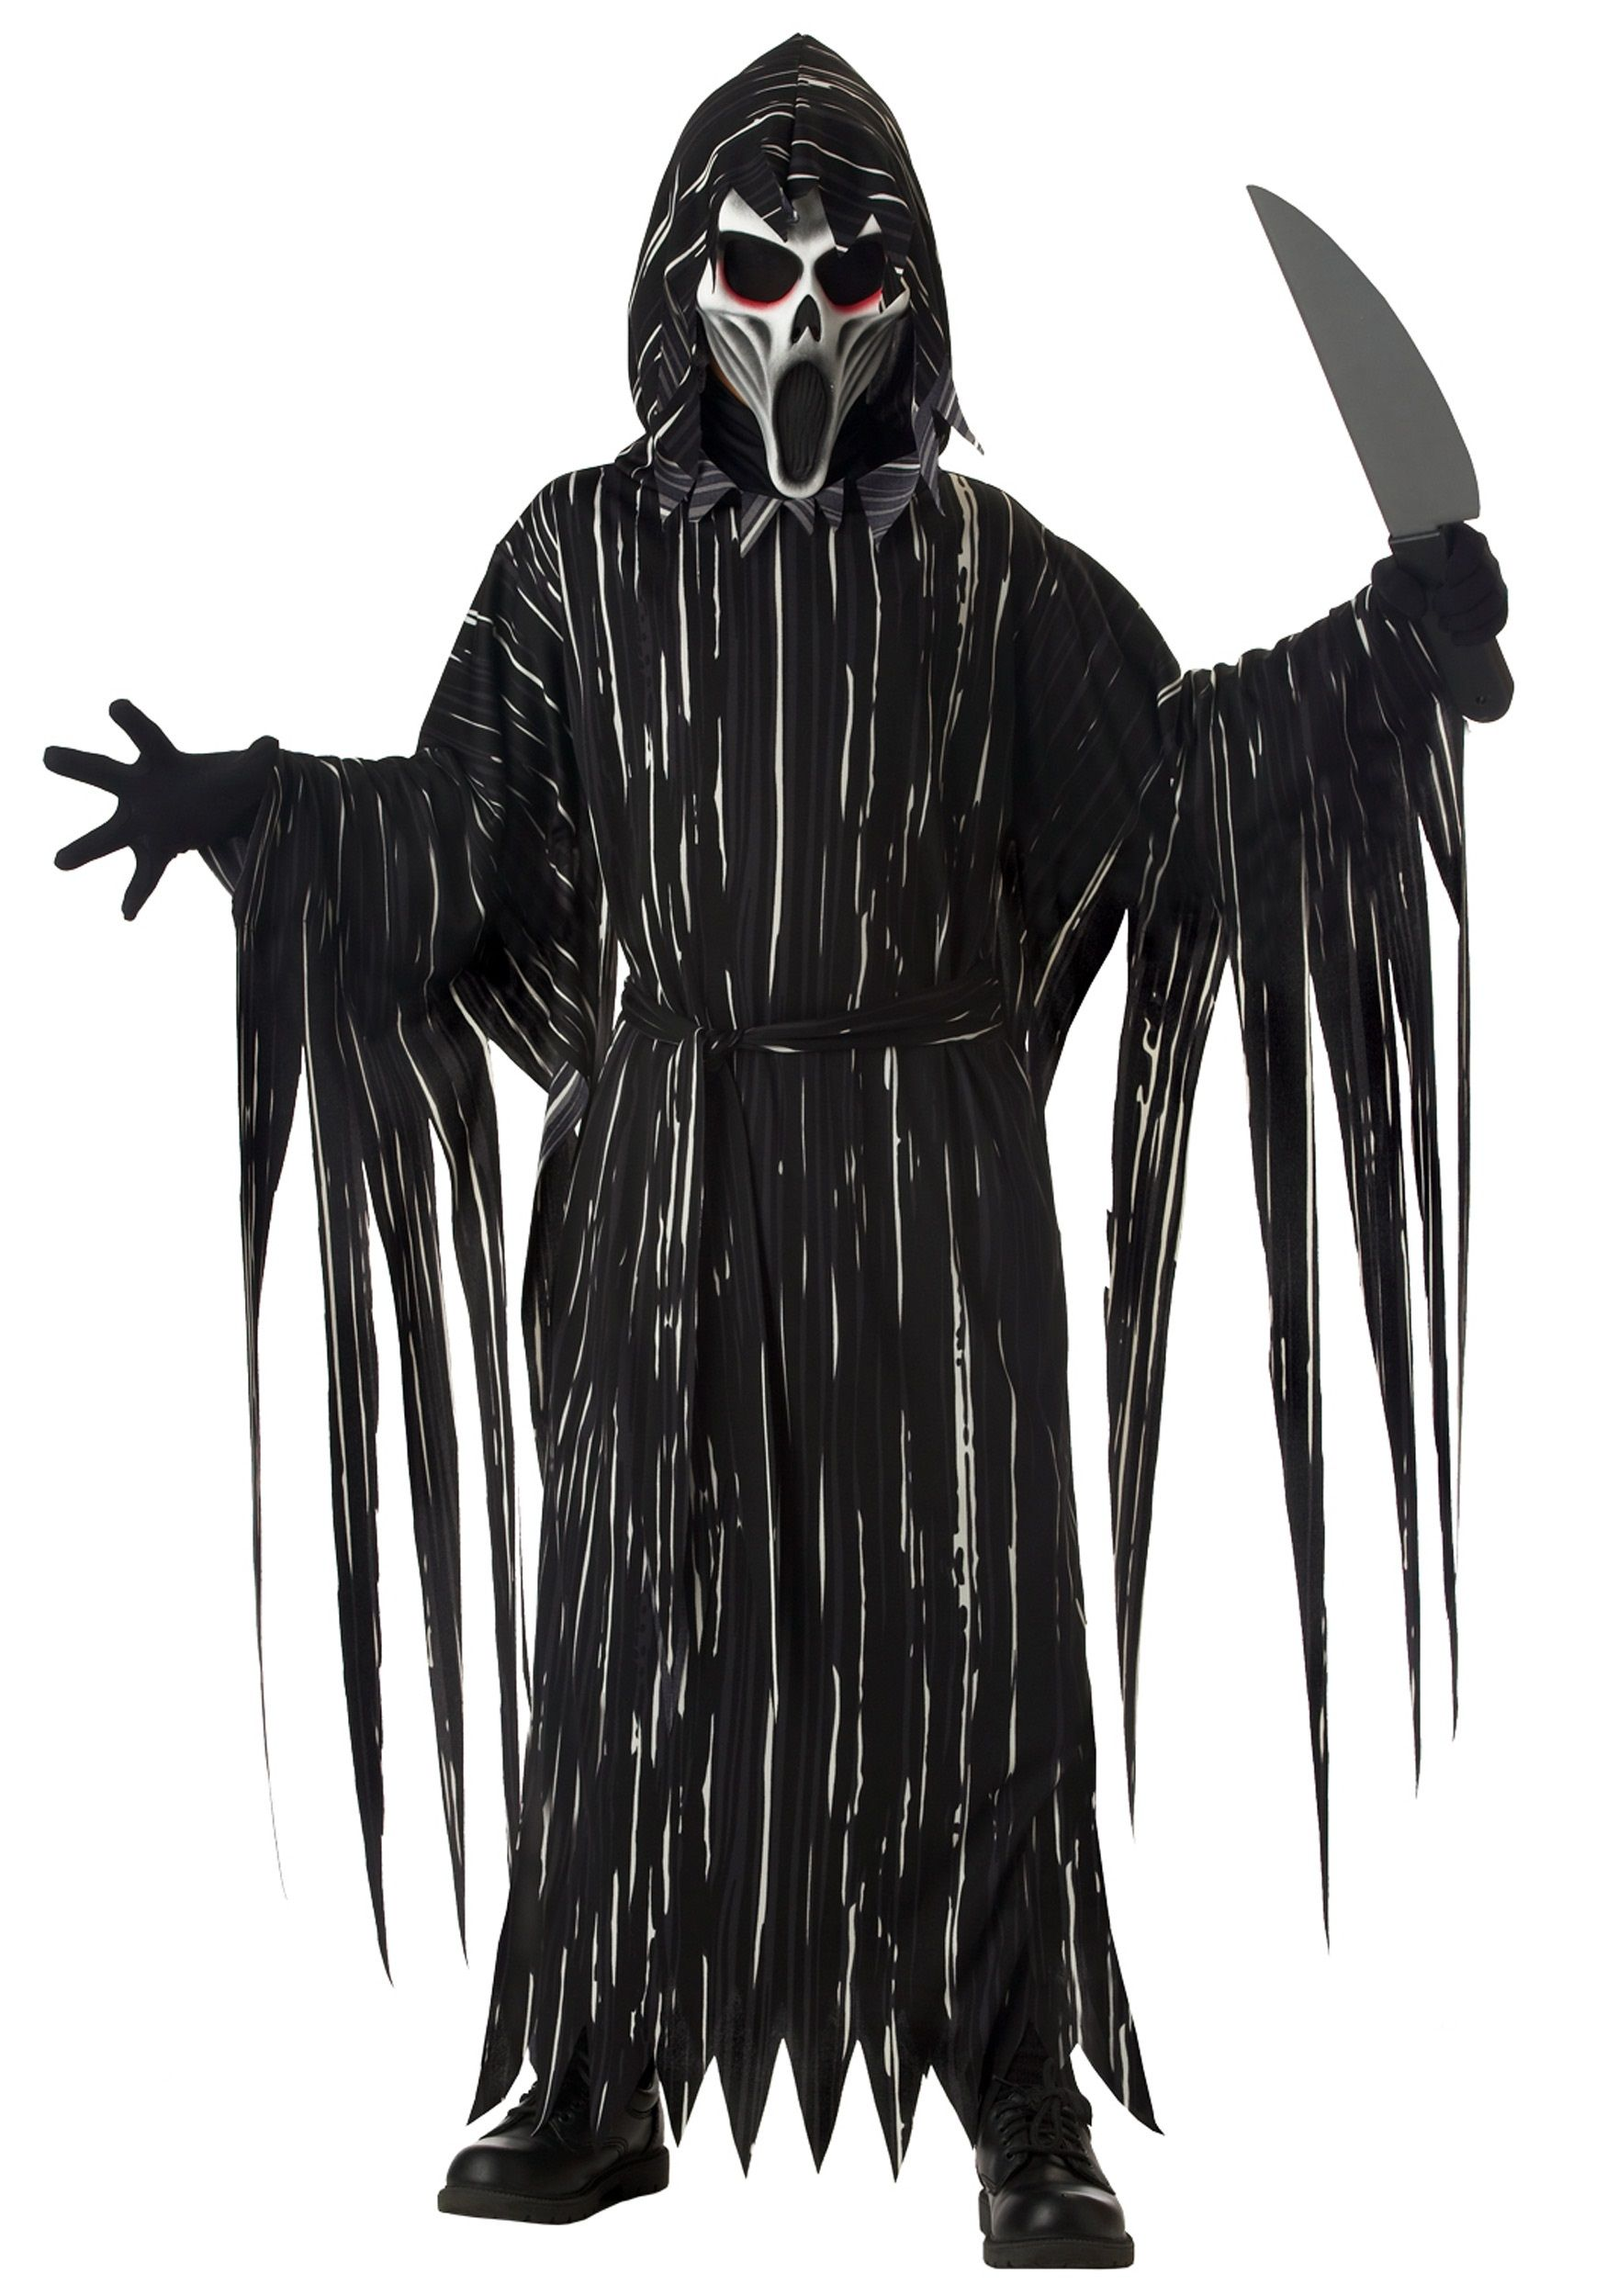 Boys-Howling-Scary-Costumes.jpg (1750×2500) | Halloween costume ...